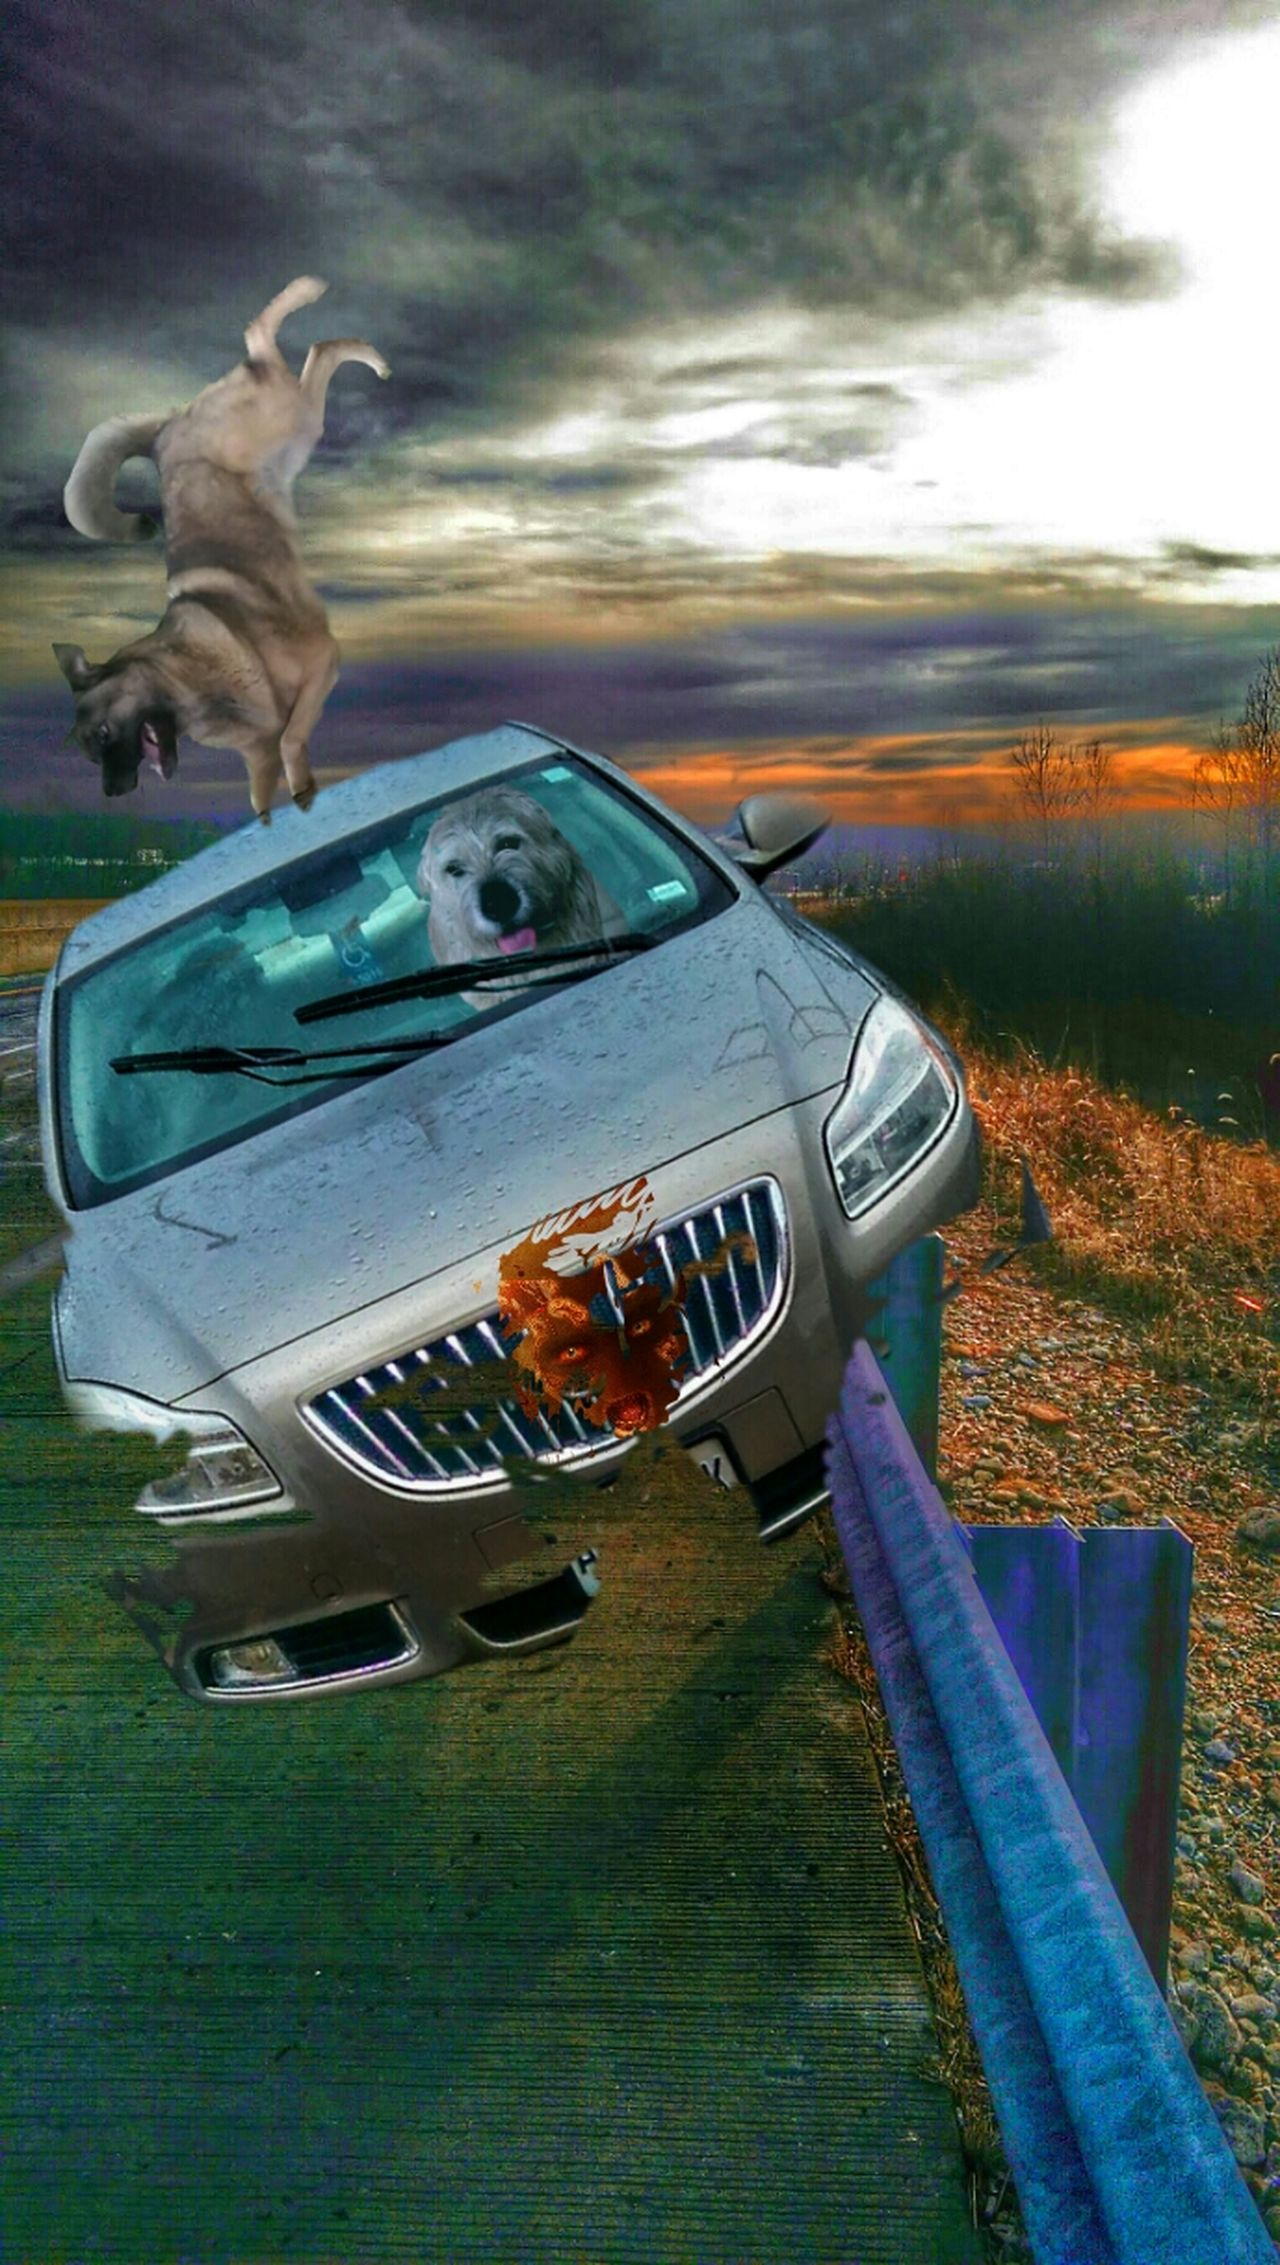 https://youtu.be/LeVEbbheUck The K9GB Teen Wolf Reenactment Wrong Turn Joyride Daredevil My Dogs Are Cooler Than Your Kids Who's Afraid Of The Big, Bad Wolf? Dead Yourself On The Grill Dogs Of Justice